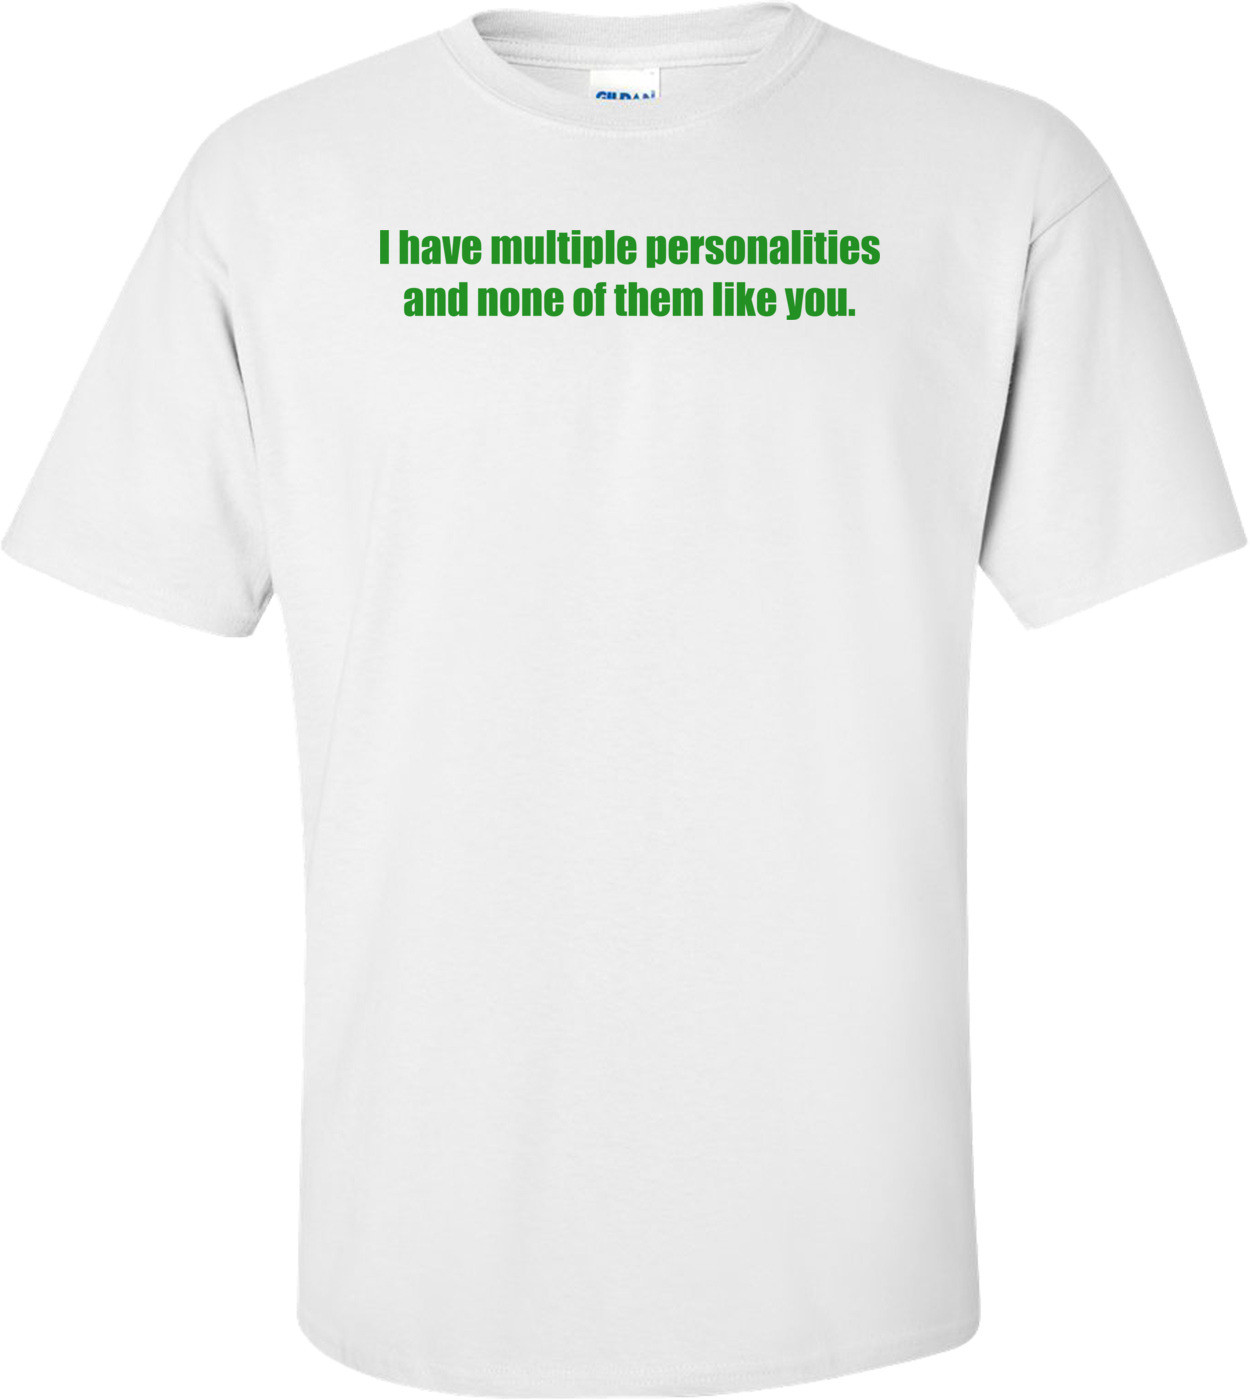 I have multiple personalities and none of them like you. Shirt